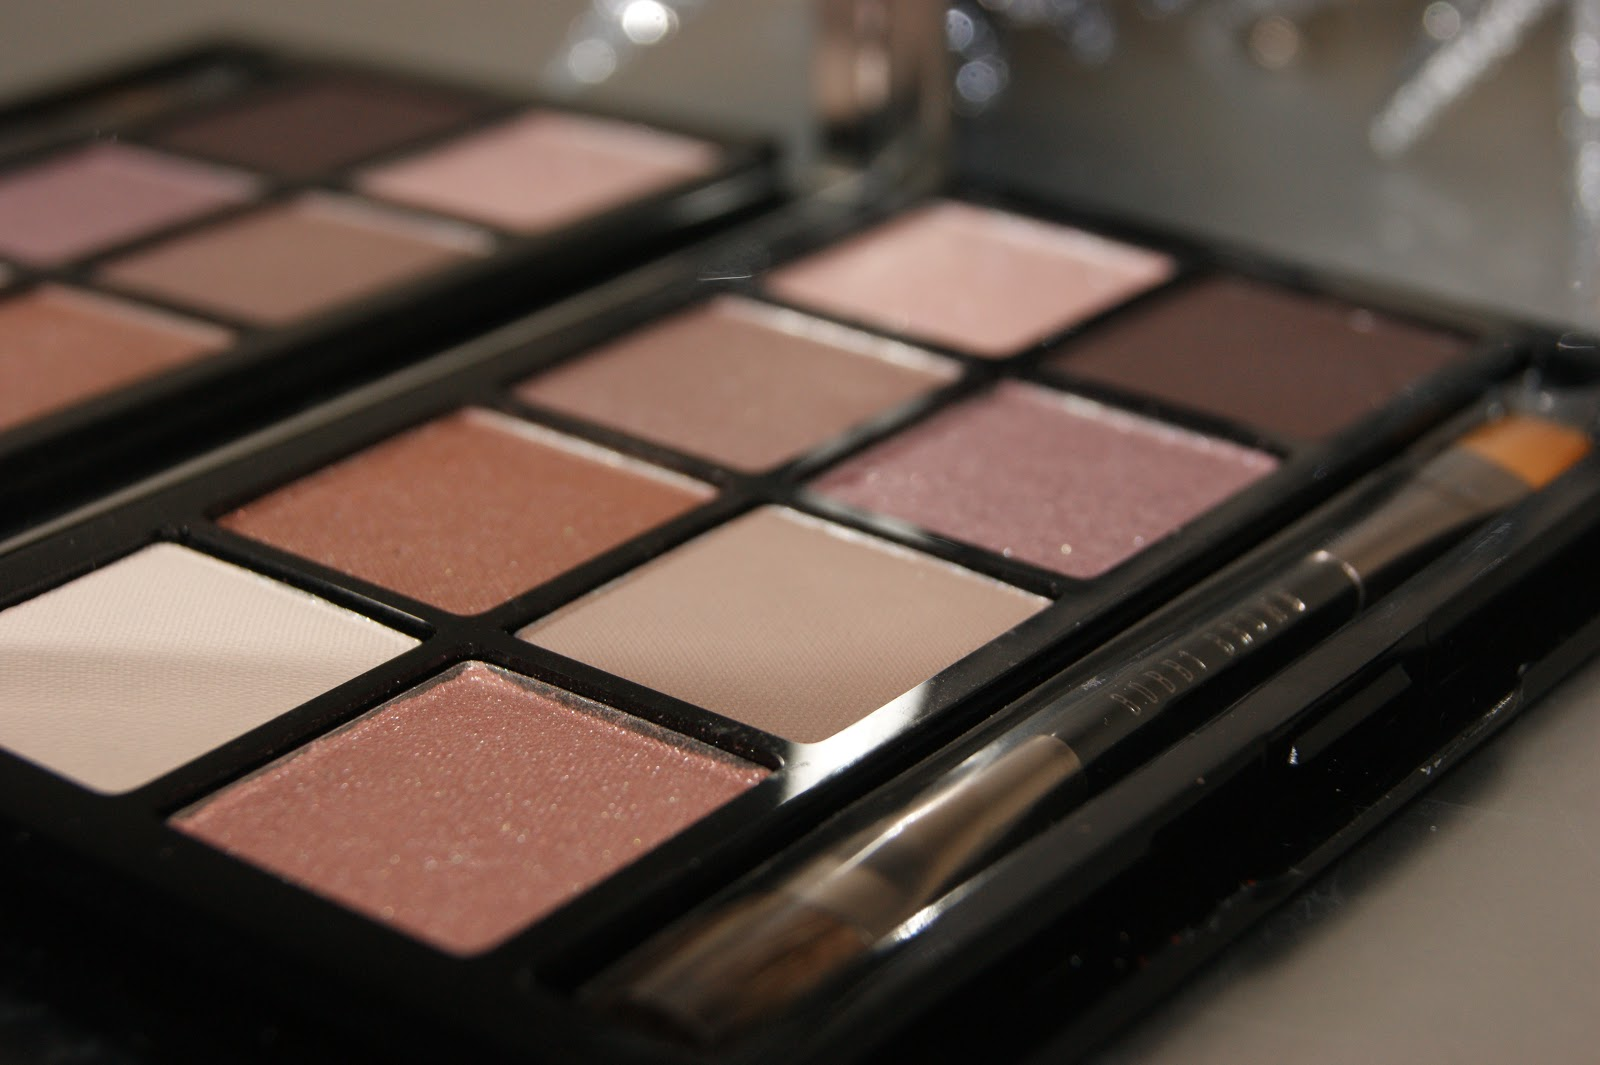 Bobbi Brown Desert Twilight Eye Shadow Palette Review